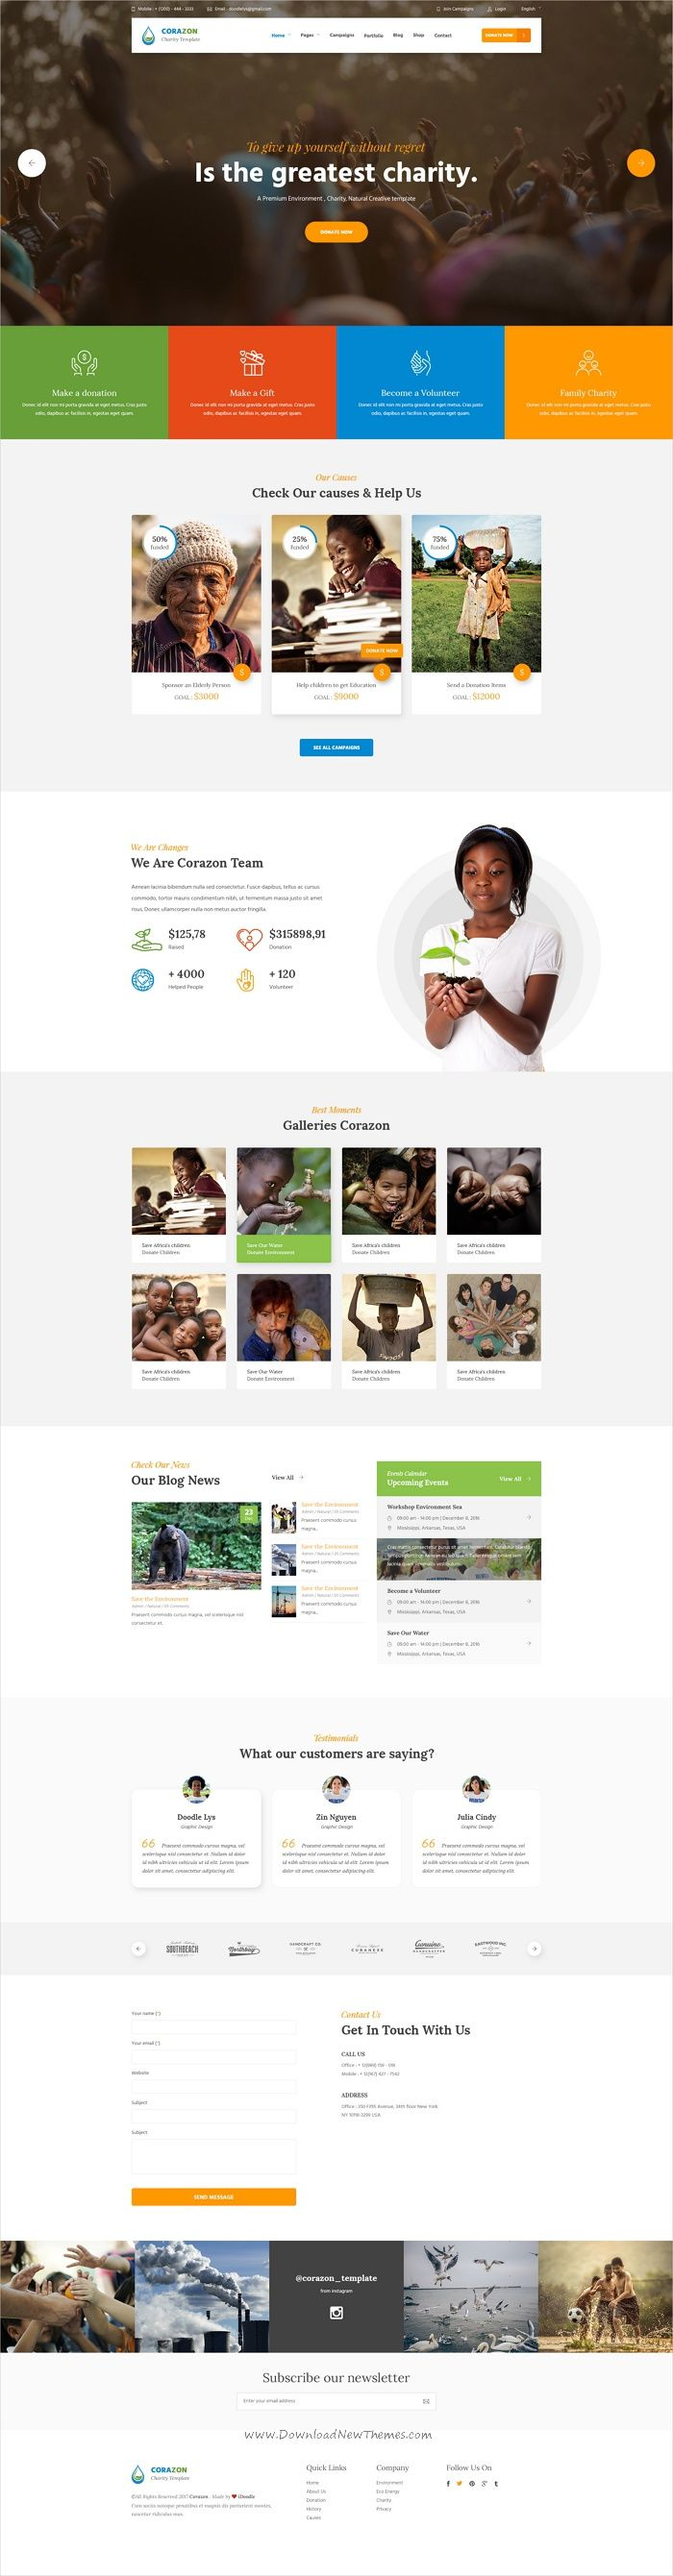 Corazon is a wonderful #PSD template for environment, #charity, non-profit organization, #donation, church or fundraising website with 18+ layered PSD files download now➩ https://themeforest.net/item/corazon-multi-concept-environment-charity-green-energy-nonprofit-psd-template/19535858?ref=Datasata